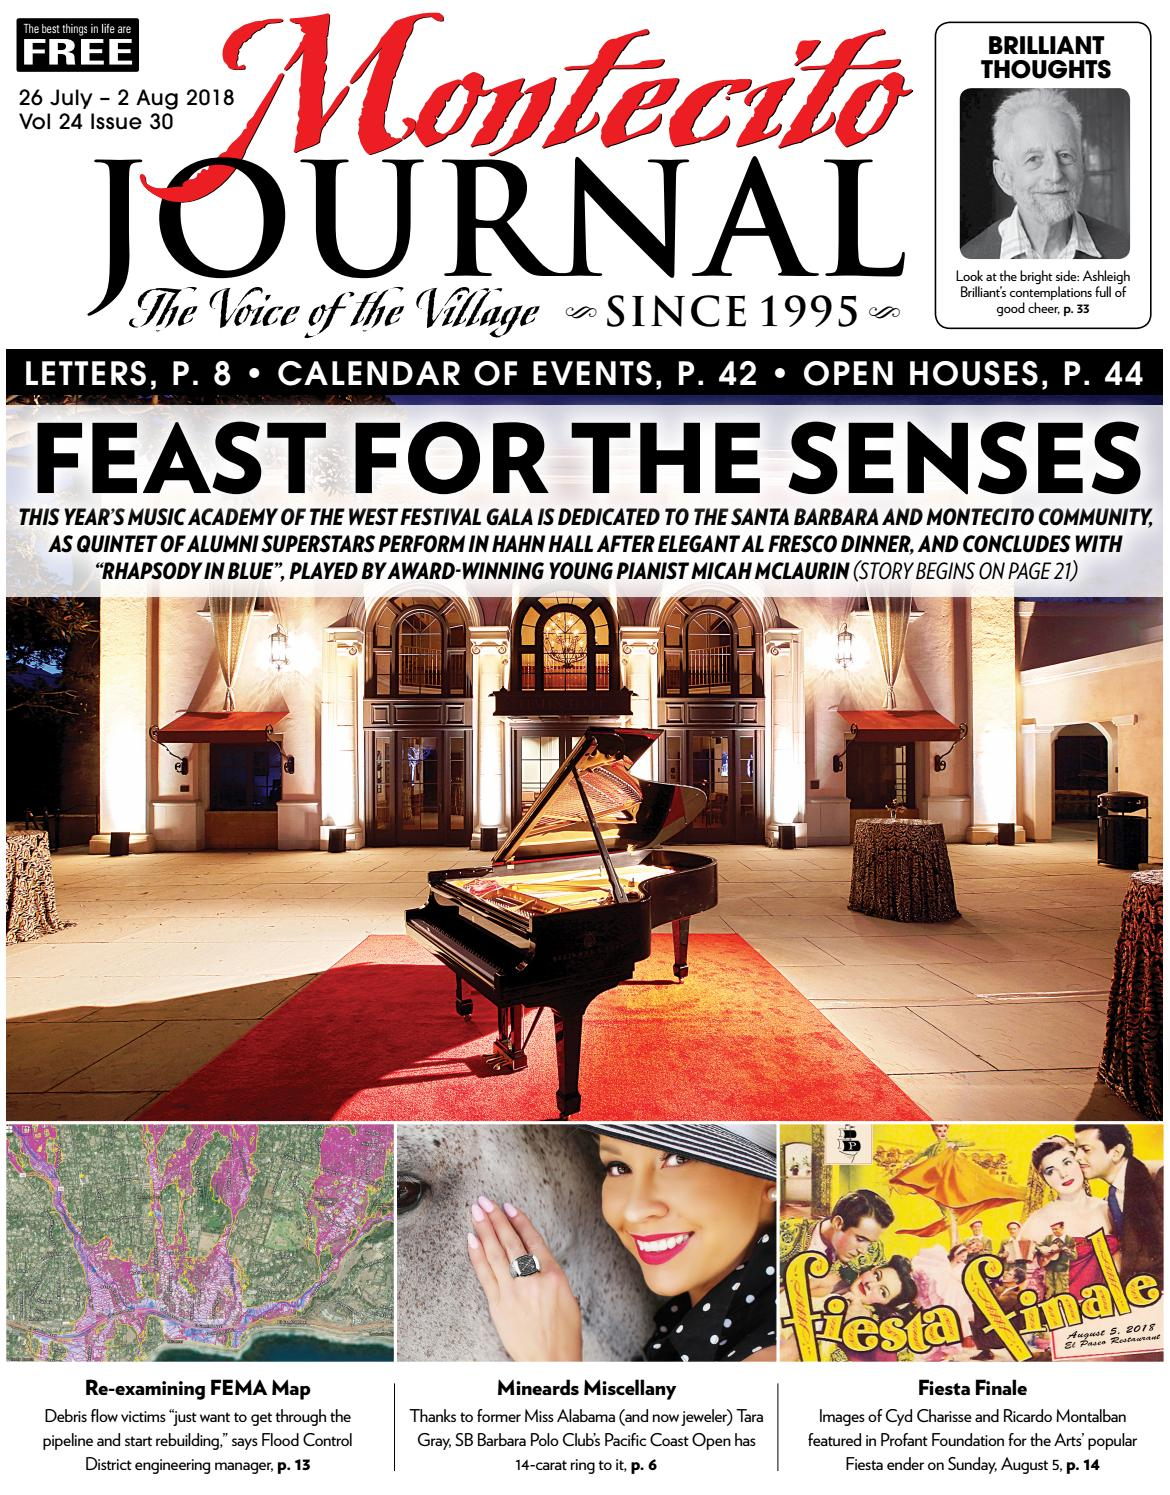 Feast For The Senses By Montecito Journal Issuu